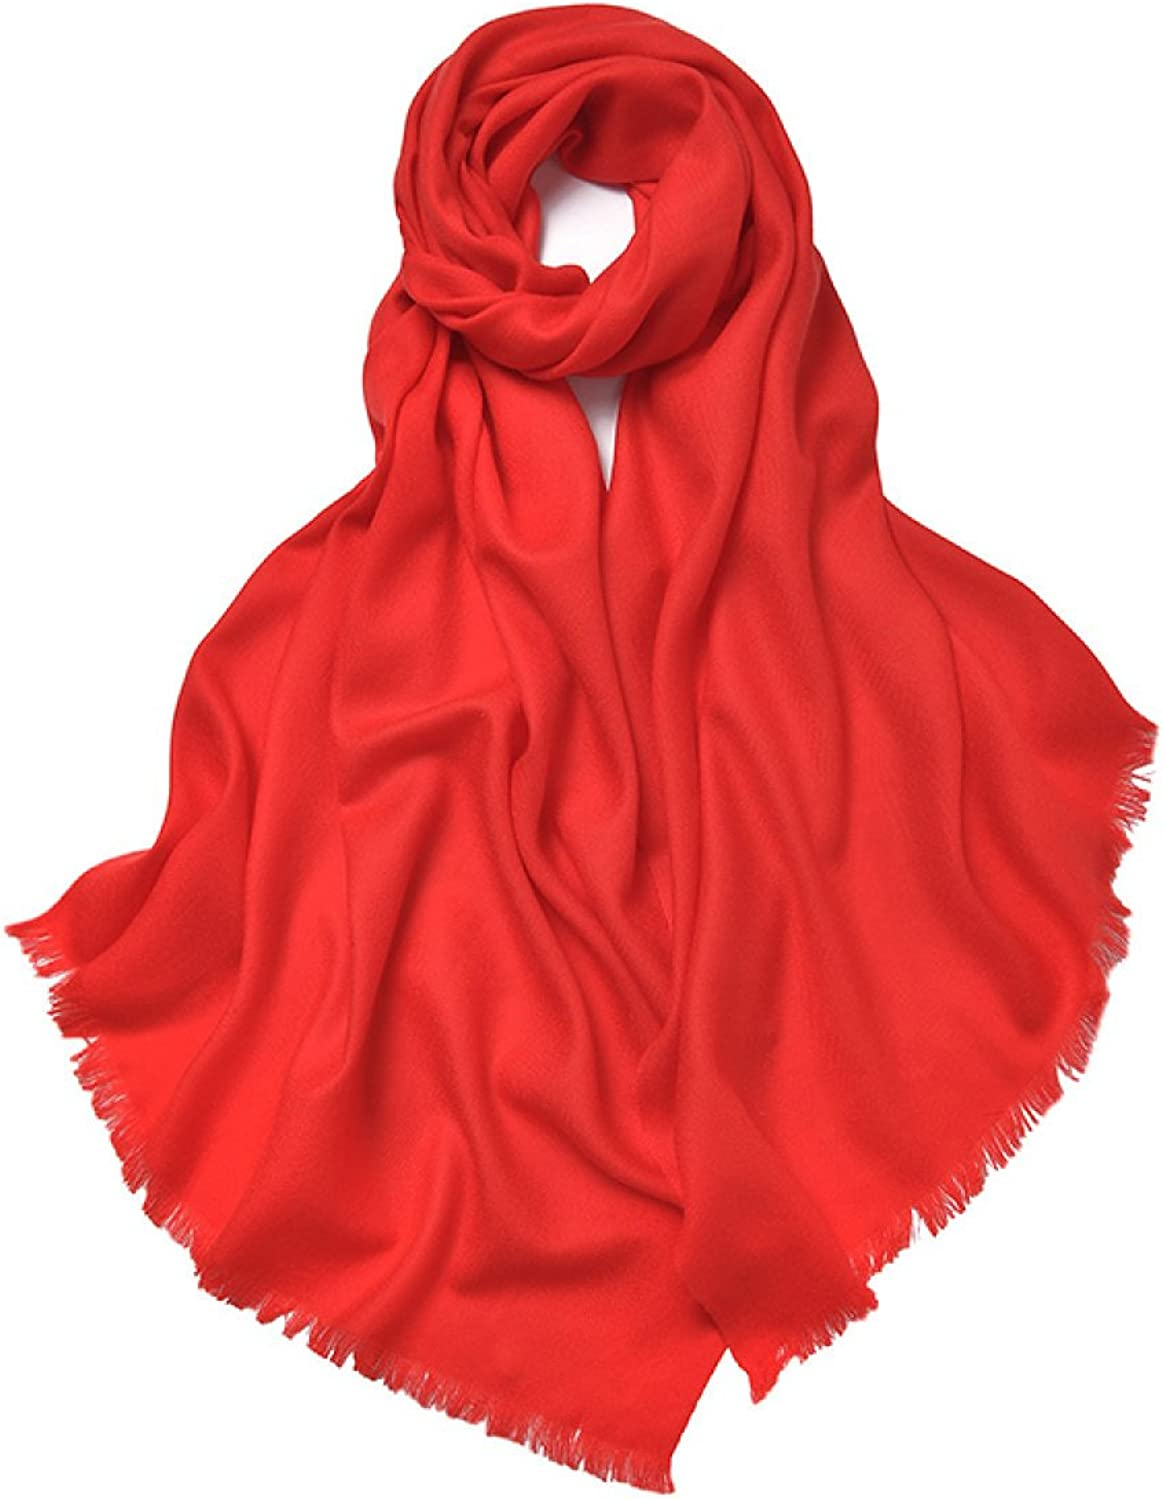 2017 Women's Autumn And Winter Long Solid color Scarf Shawl Dual The New,7OneSize